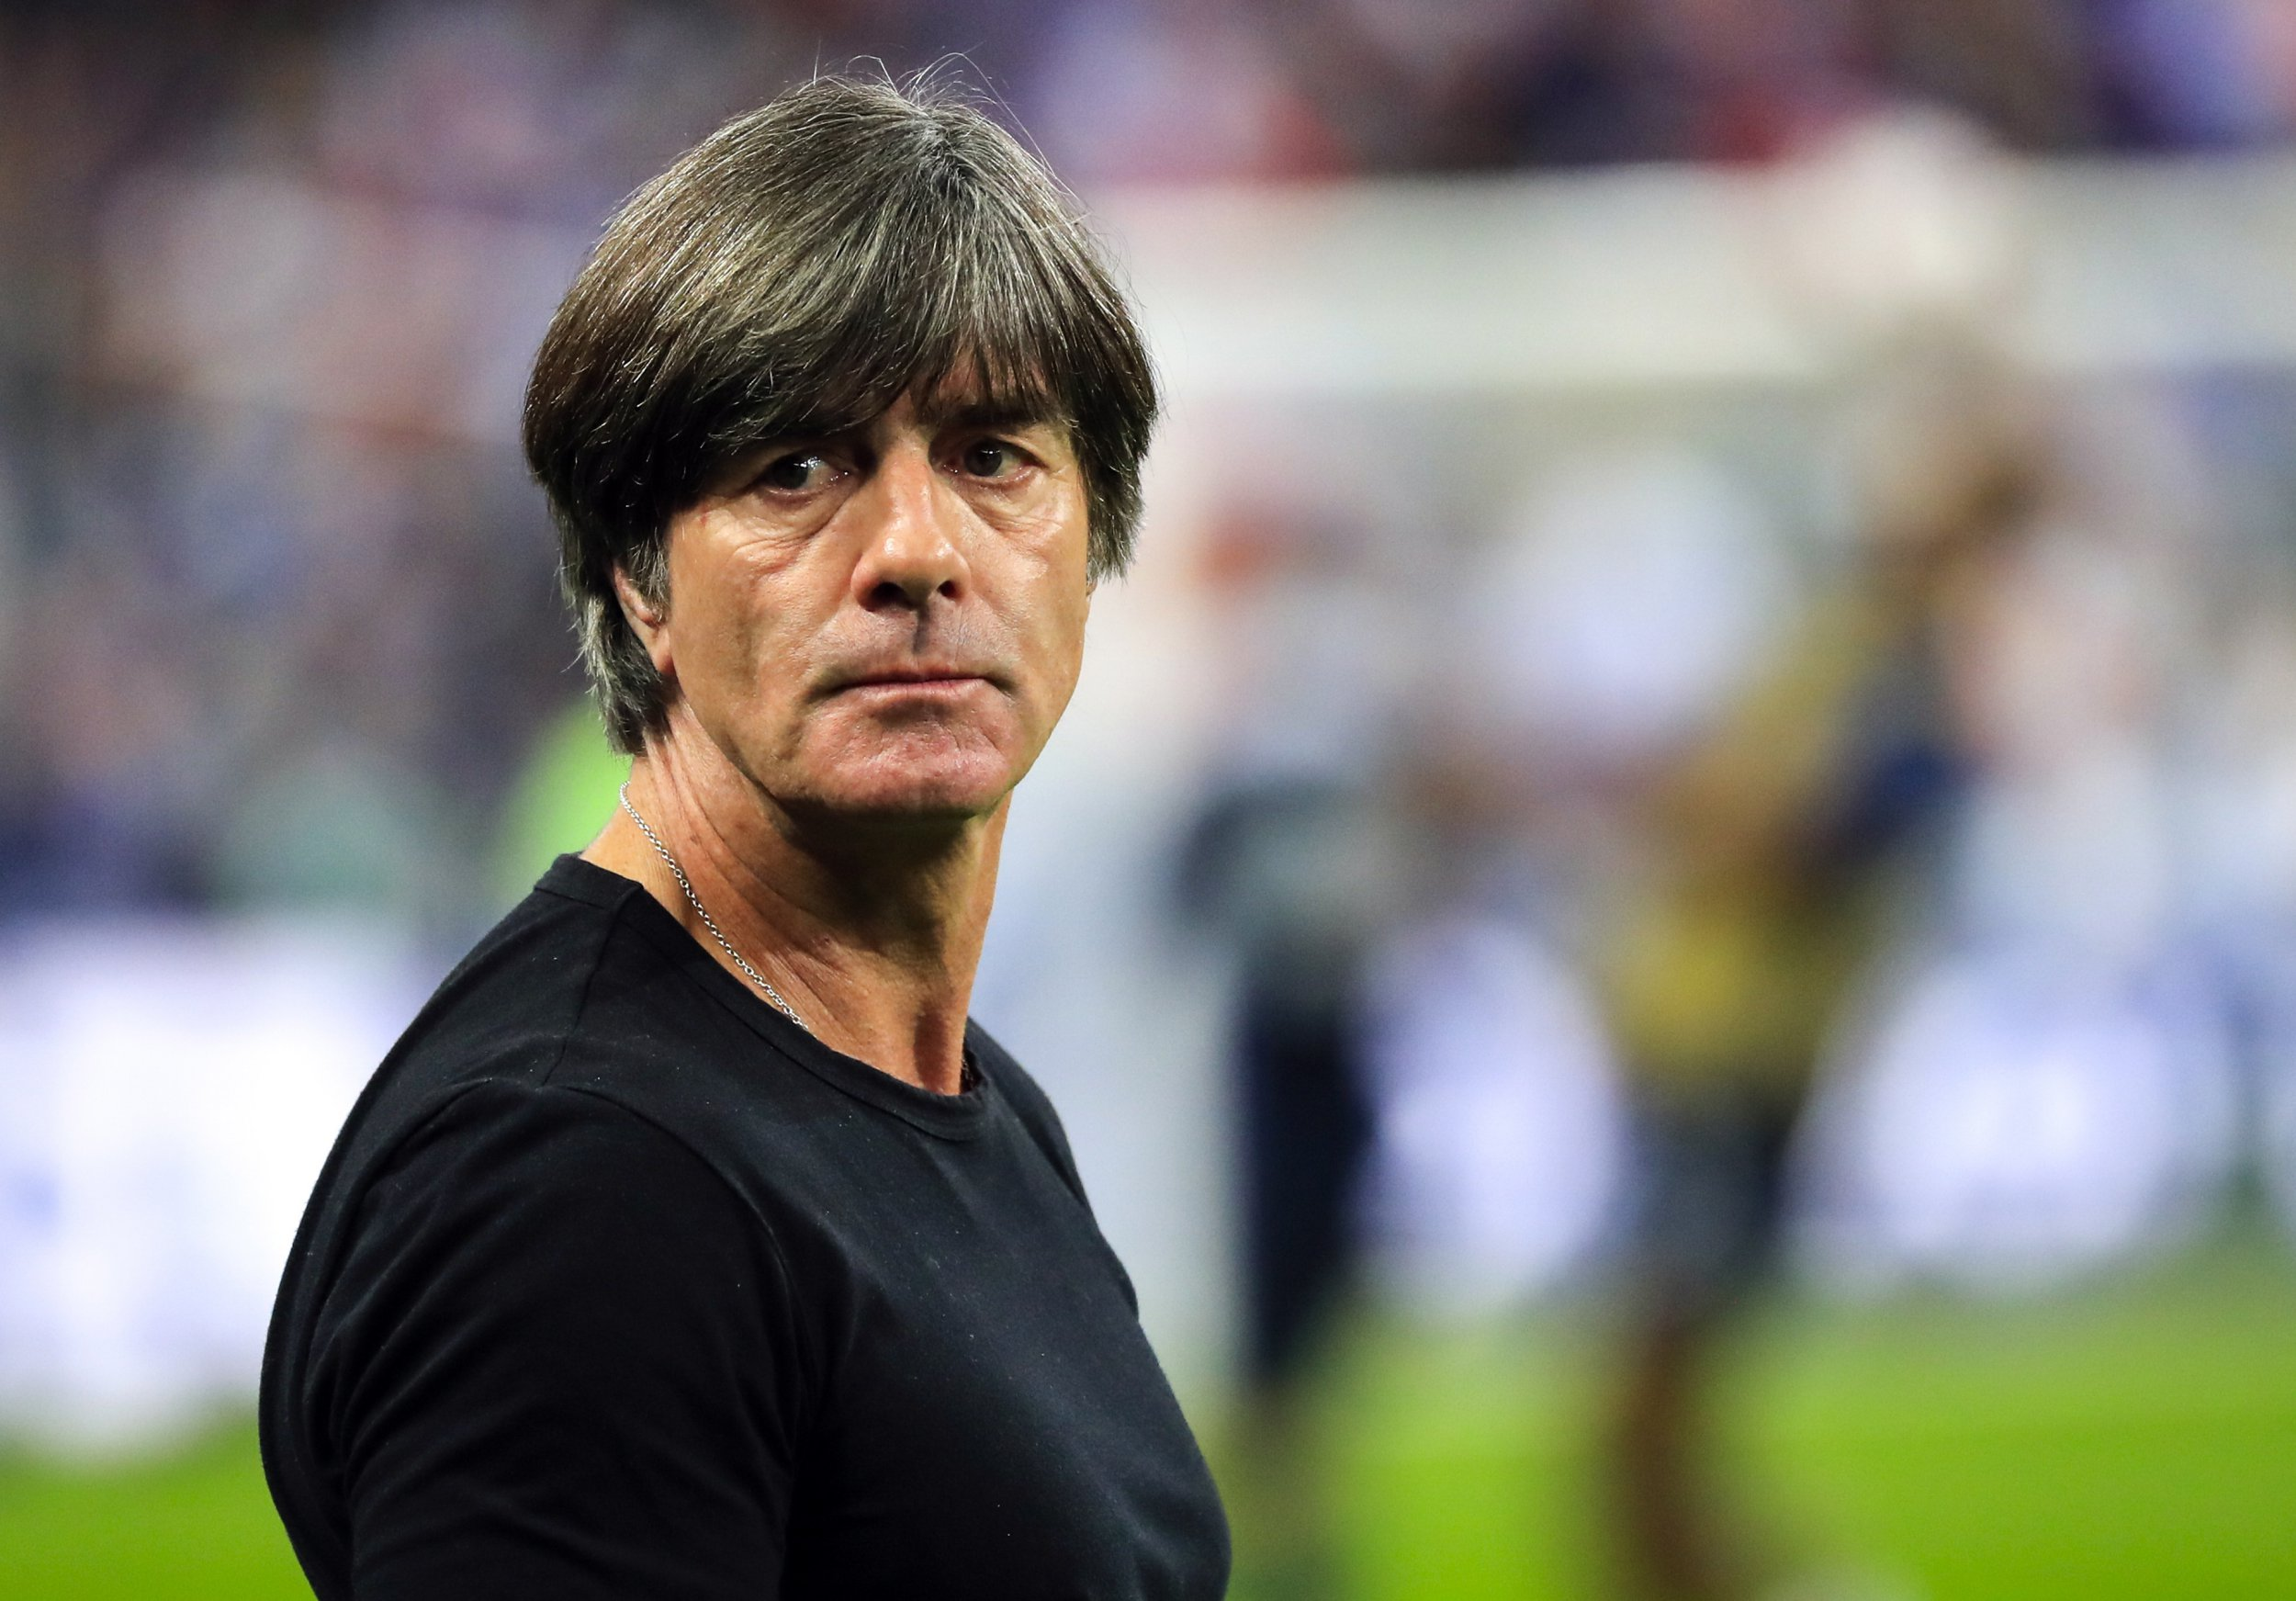 epa07098049 German's head coach Joachim Low prior the UEFA Nations League soccer match between France and Germany in Paris, France on 16 October 2018. EPA/Christophe Petit-Tesson